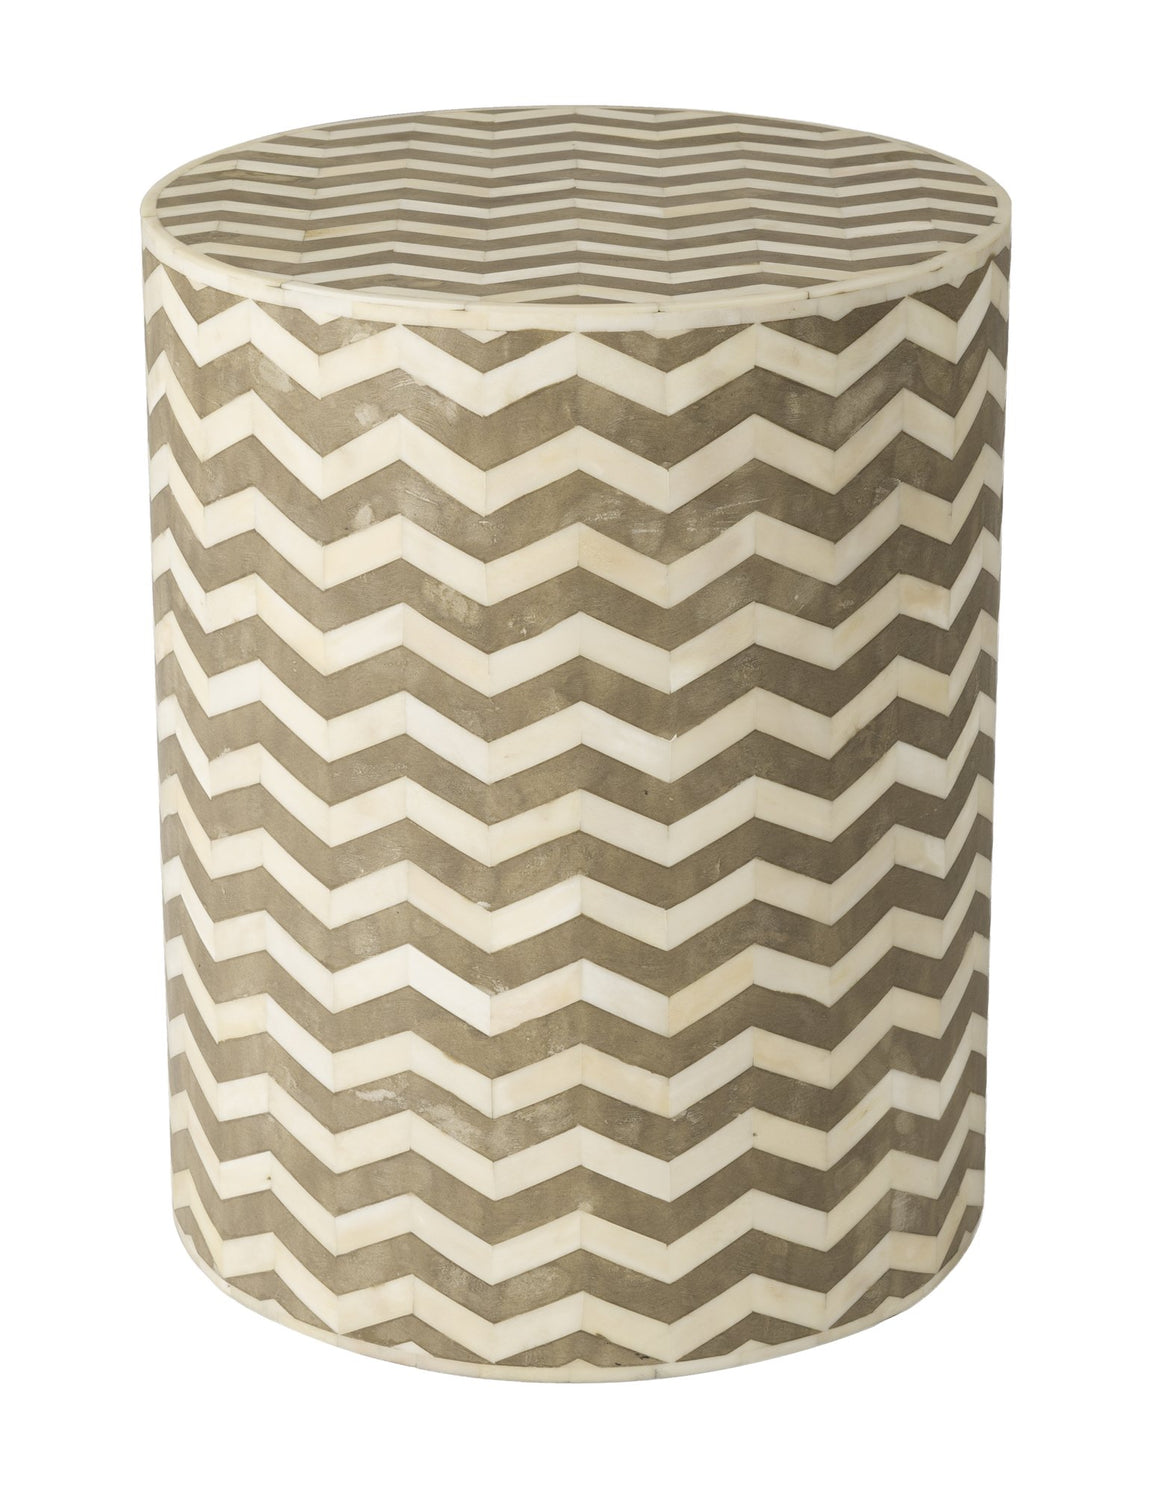 5th Avenue Round Side Table - Chevron